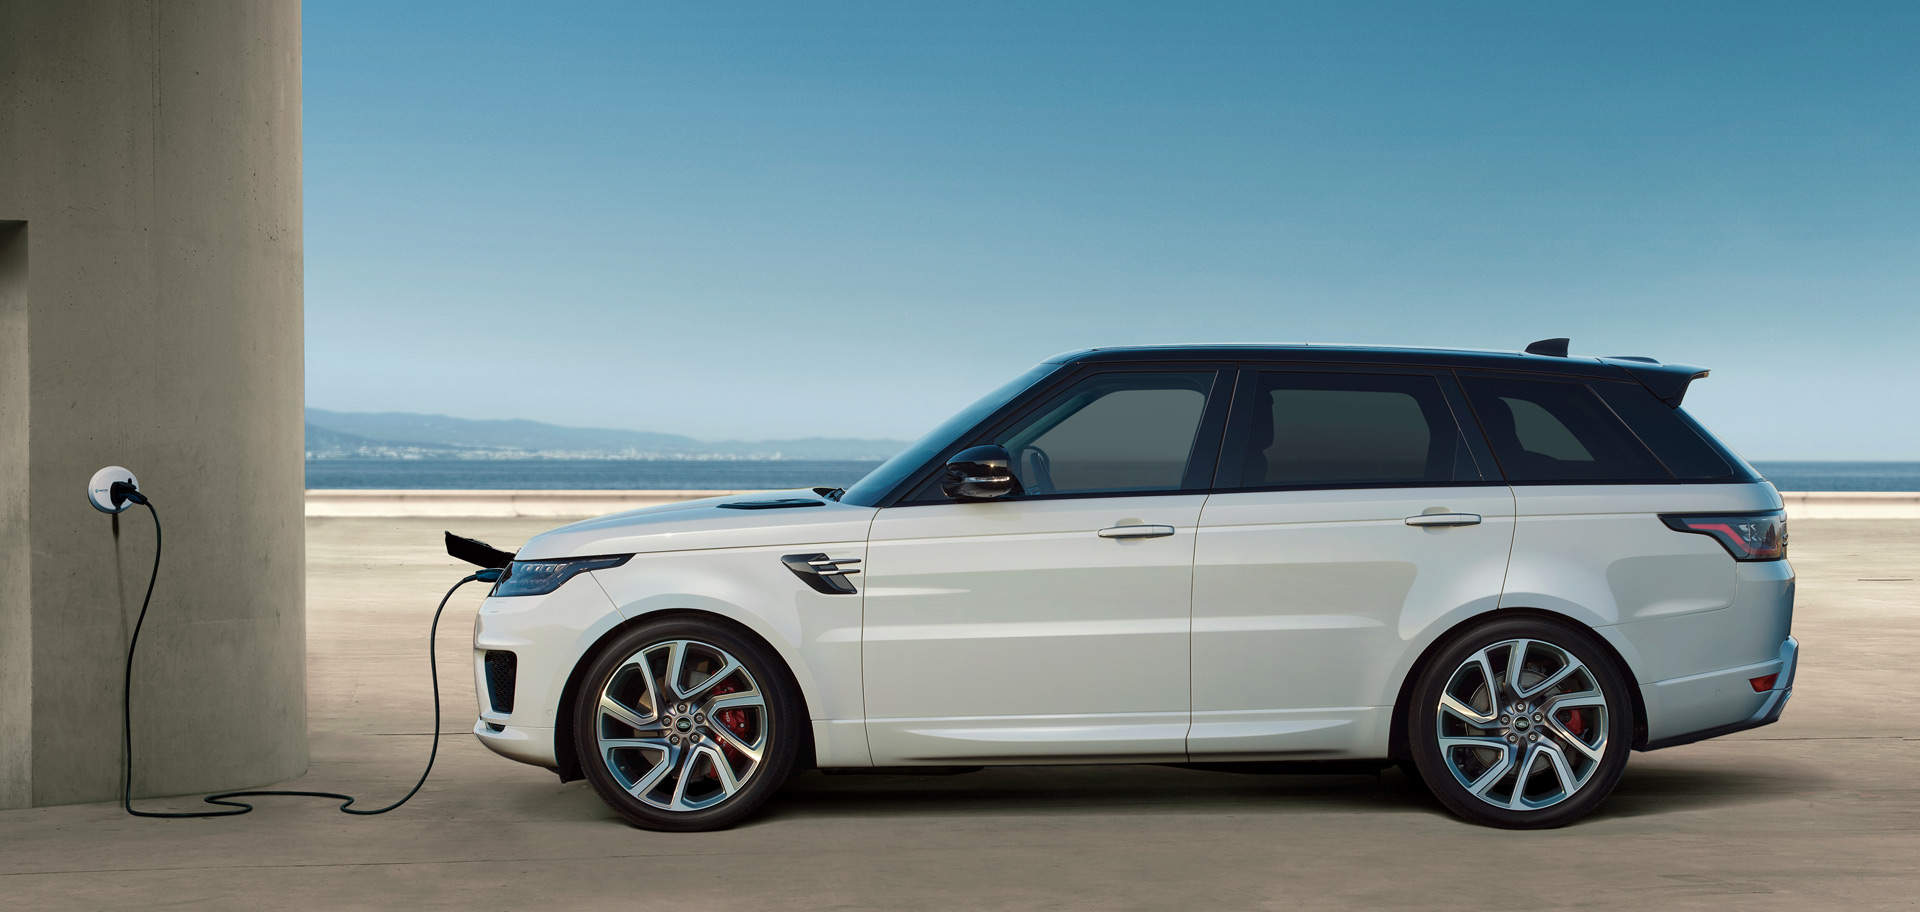 2019 land rover range rover sport p400e plug in hybrid first look. Black Bedroom Furniture Sets. Home Design Ideas